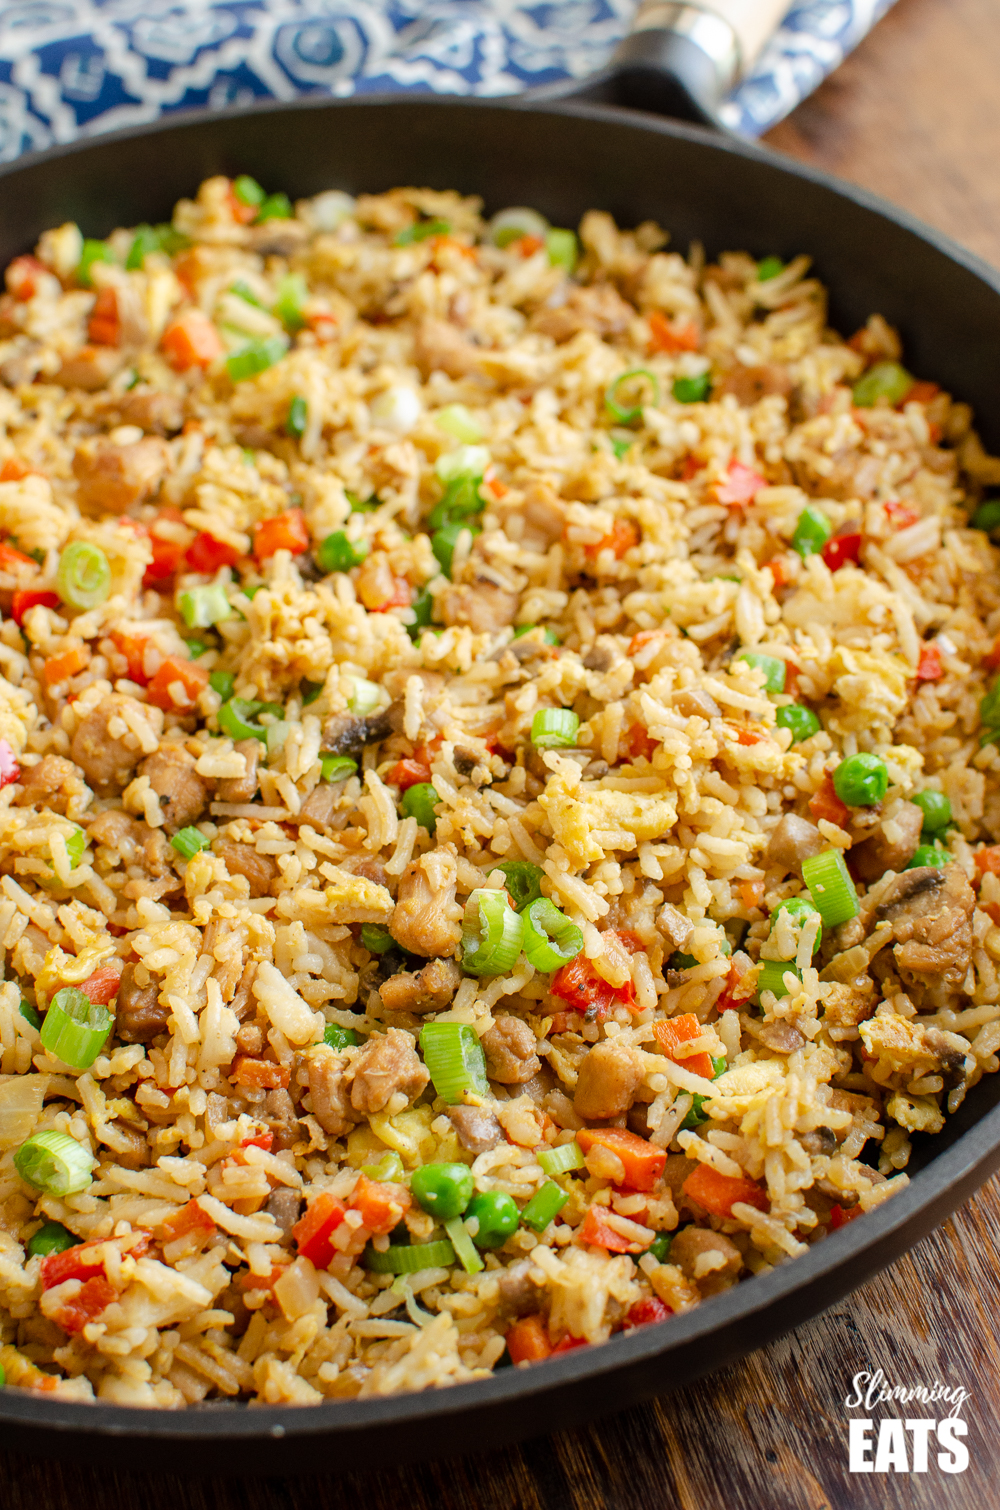 chicken fried rice in a frying pan on a blue pattern placemat and wooden board